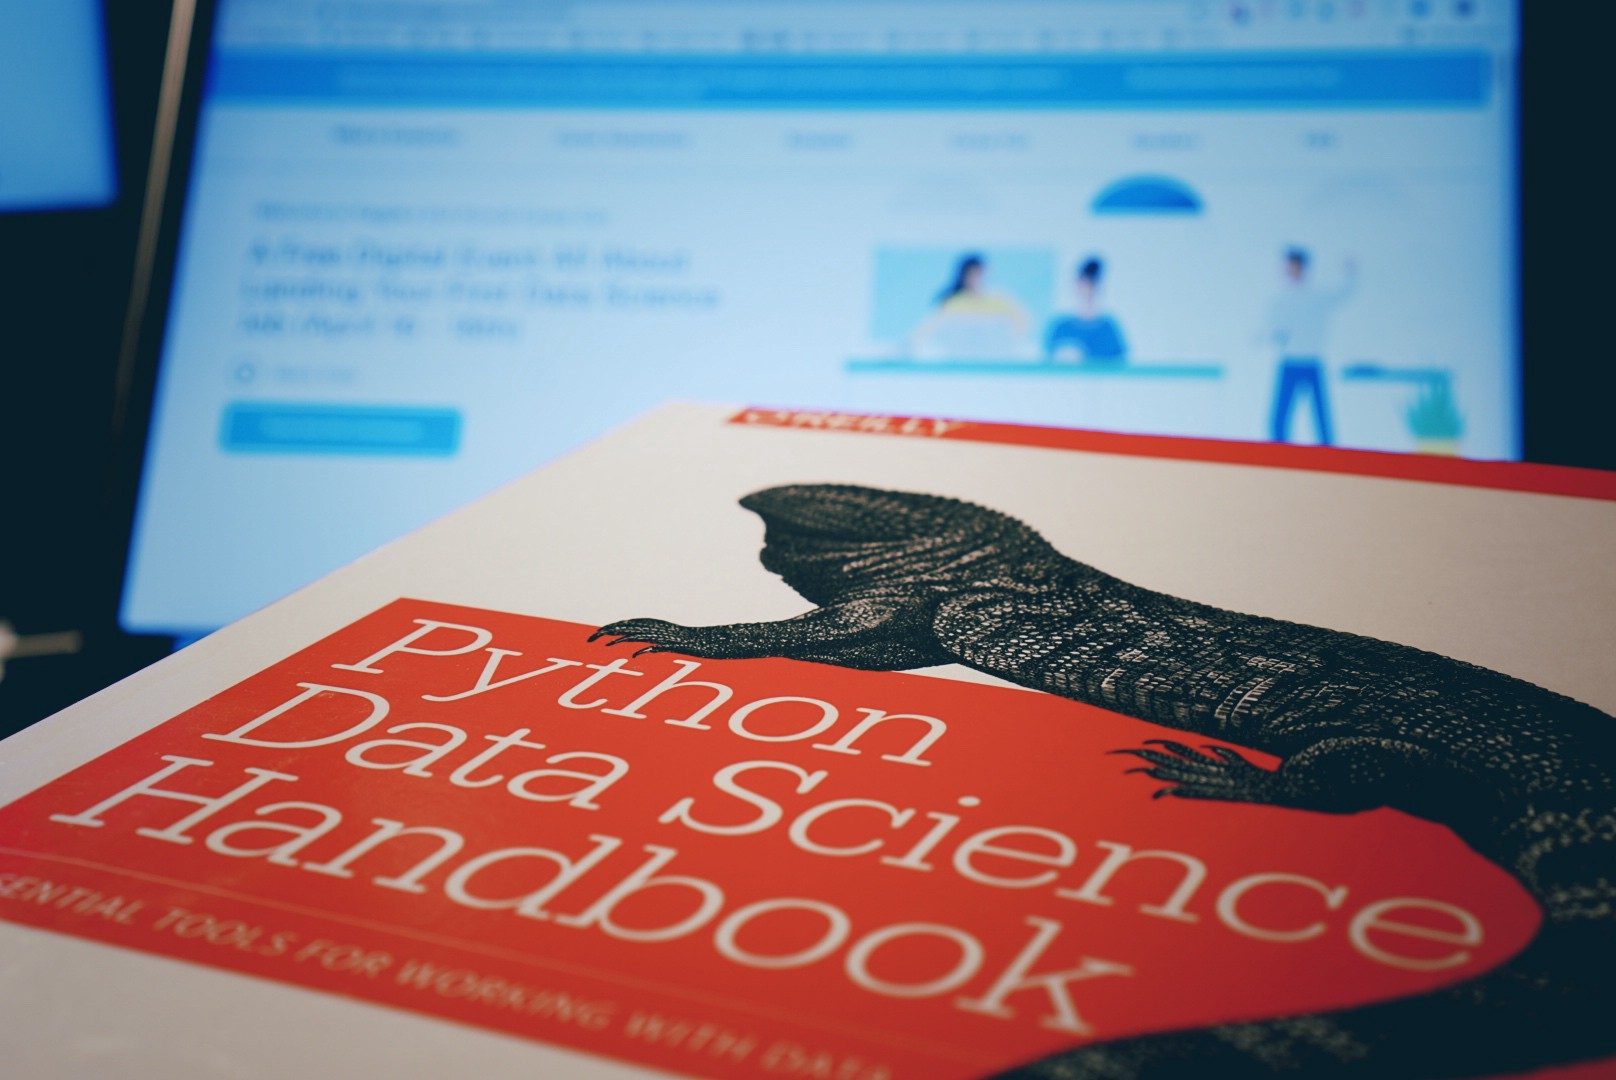 Becoming a Data Scientist — When Dan Becker pointed out I had it all